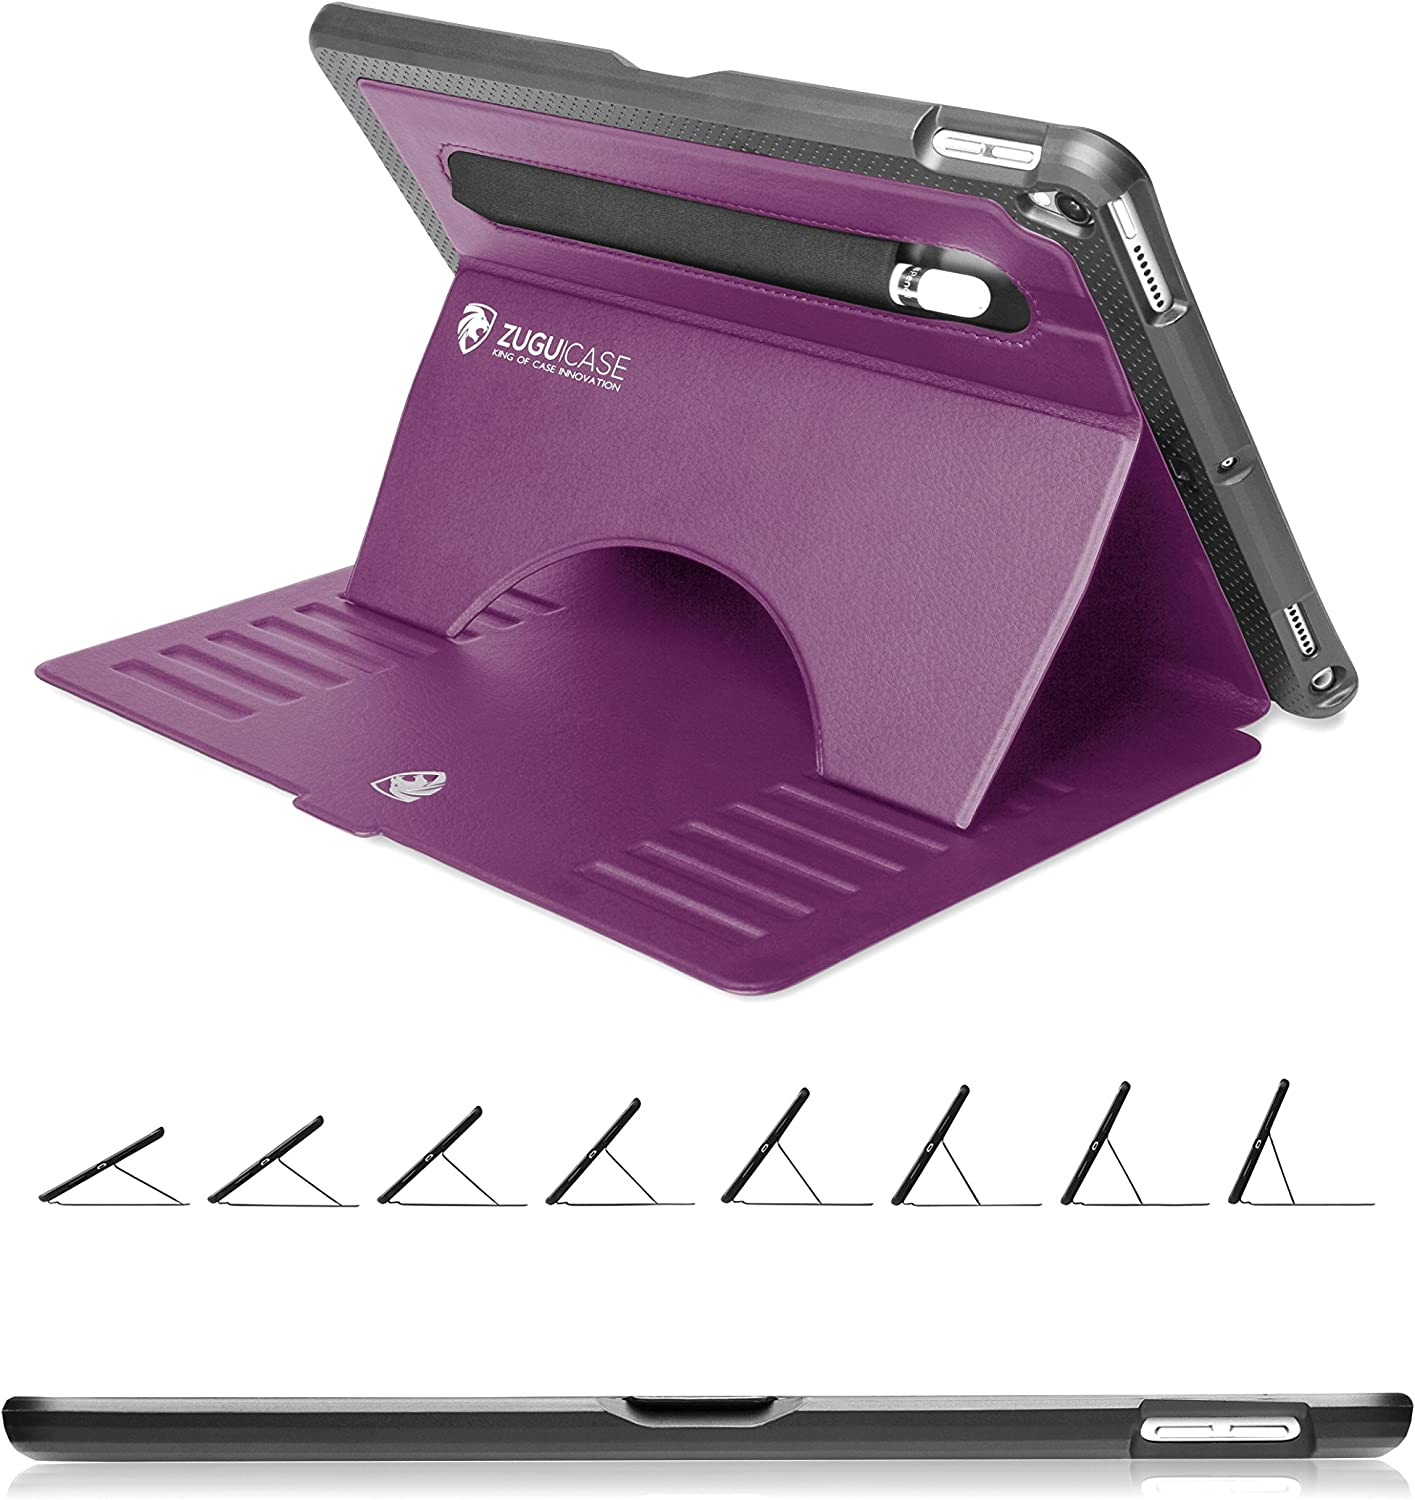 ZUGU CASE - 2019 iPad Air 10.5/2017 iPad Pro 10.5 inch Case Prodigy X - Very Protective But Thin + Convenient Magnetic Stand + Sleep/Wake Cover (Purple)